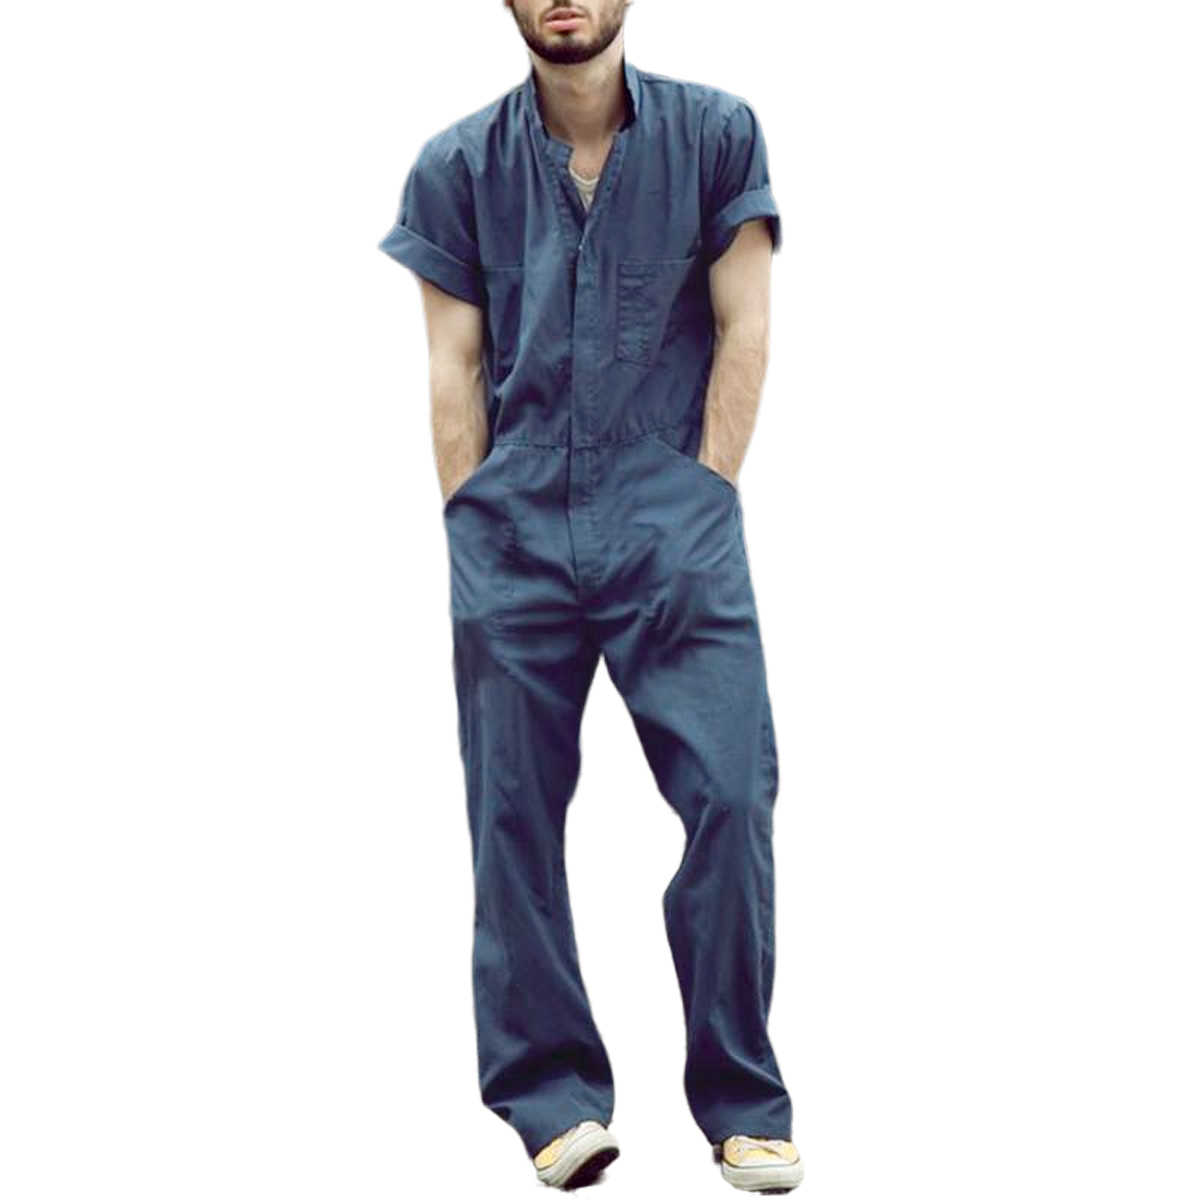 Male Jumpsuit Men Short Sleeve Basic Work Coverall Loose Cargo Overalls Solid Color Casual Joggers Street Wear Pants Jumpsuit Aliexpress